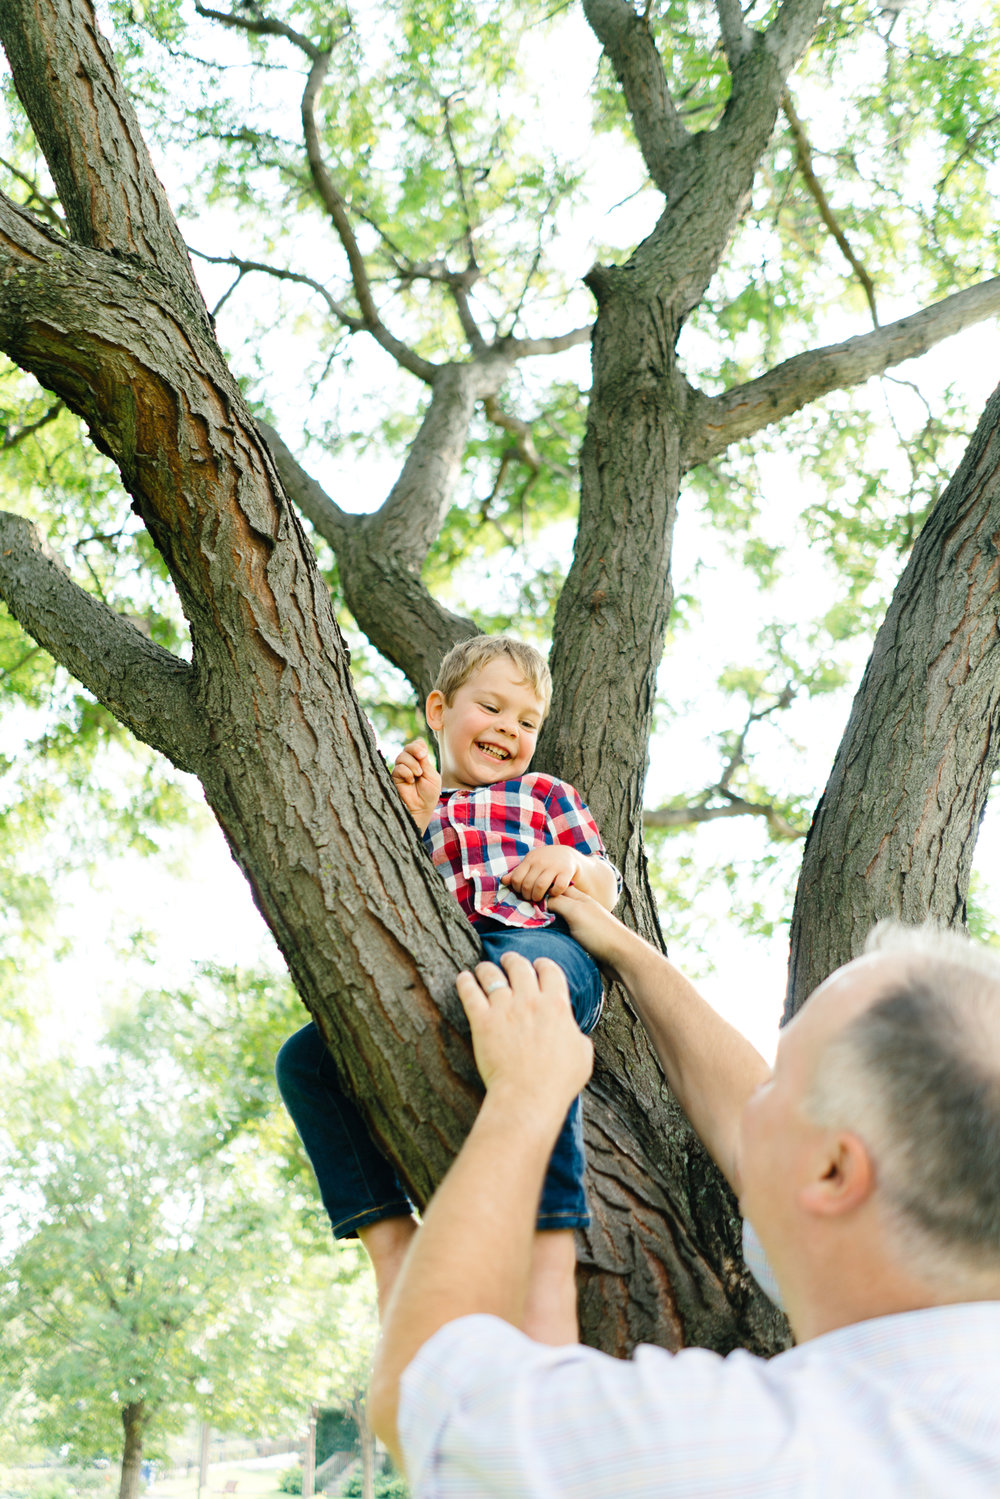 Family Portrait Photography at Loring Park in Minneapolis, Minnesota